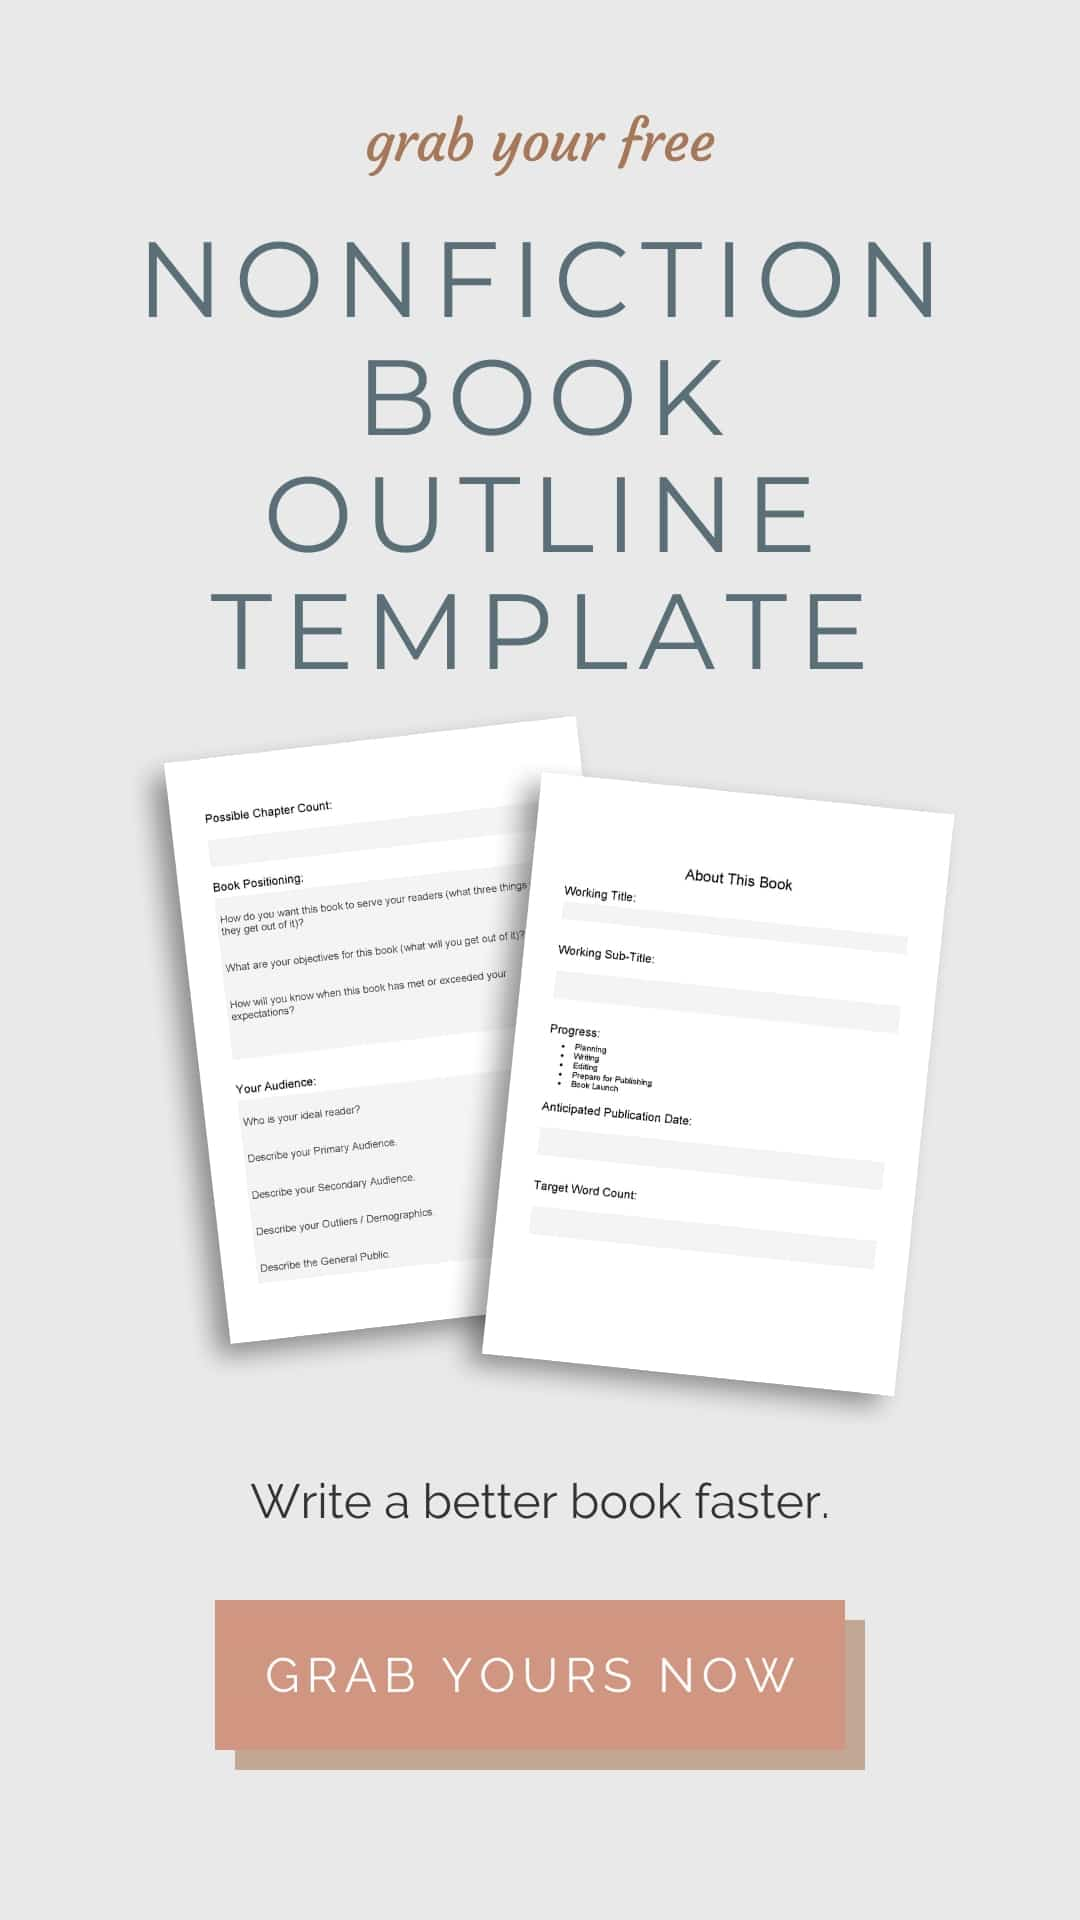 Grab your Free Nonfiction Book Outline Template Here sidebar ad image